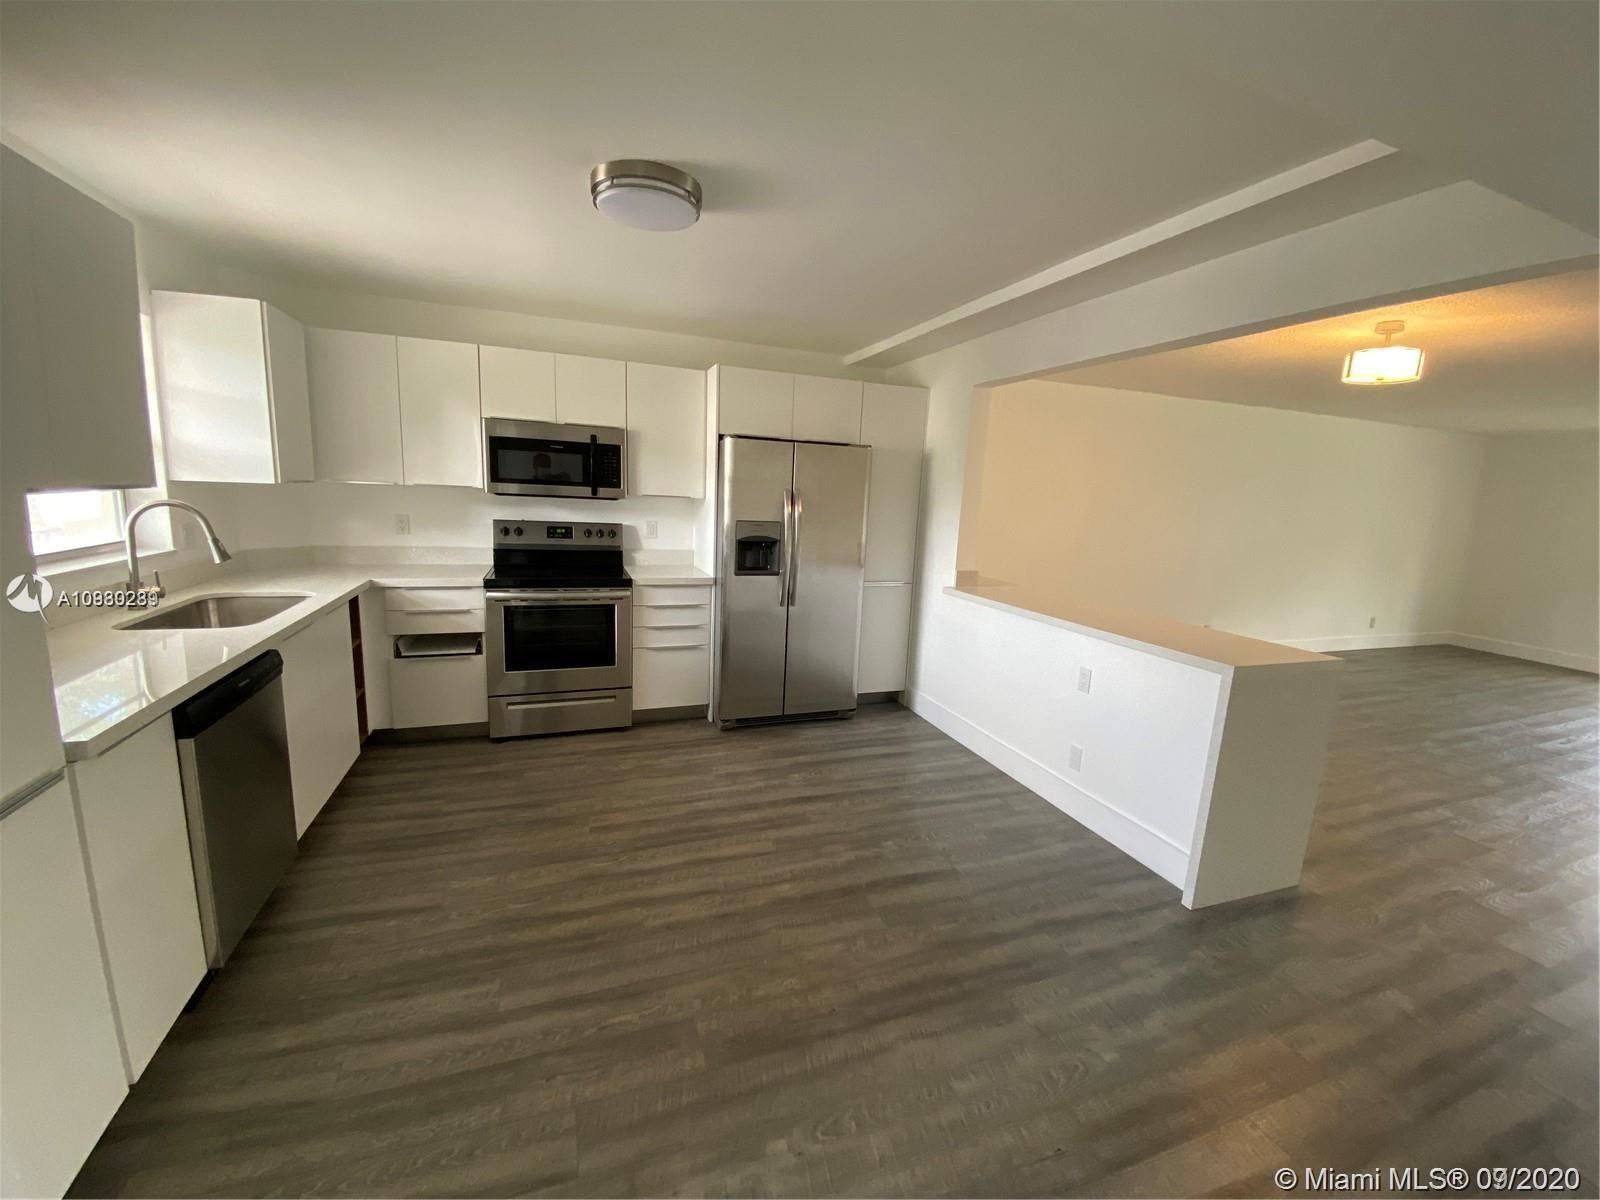 Photo of 271 S Hollybrook Dr #203, Pembroke Pines, FL 33025 (MLS # A10930289)